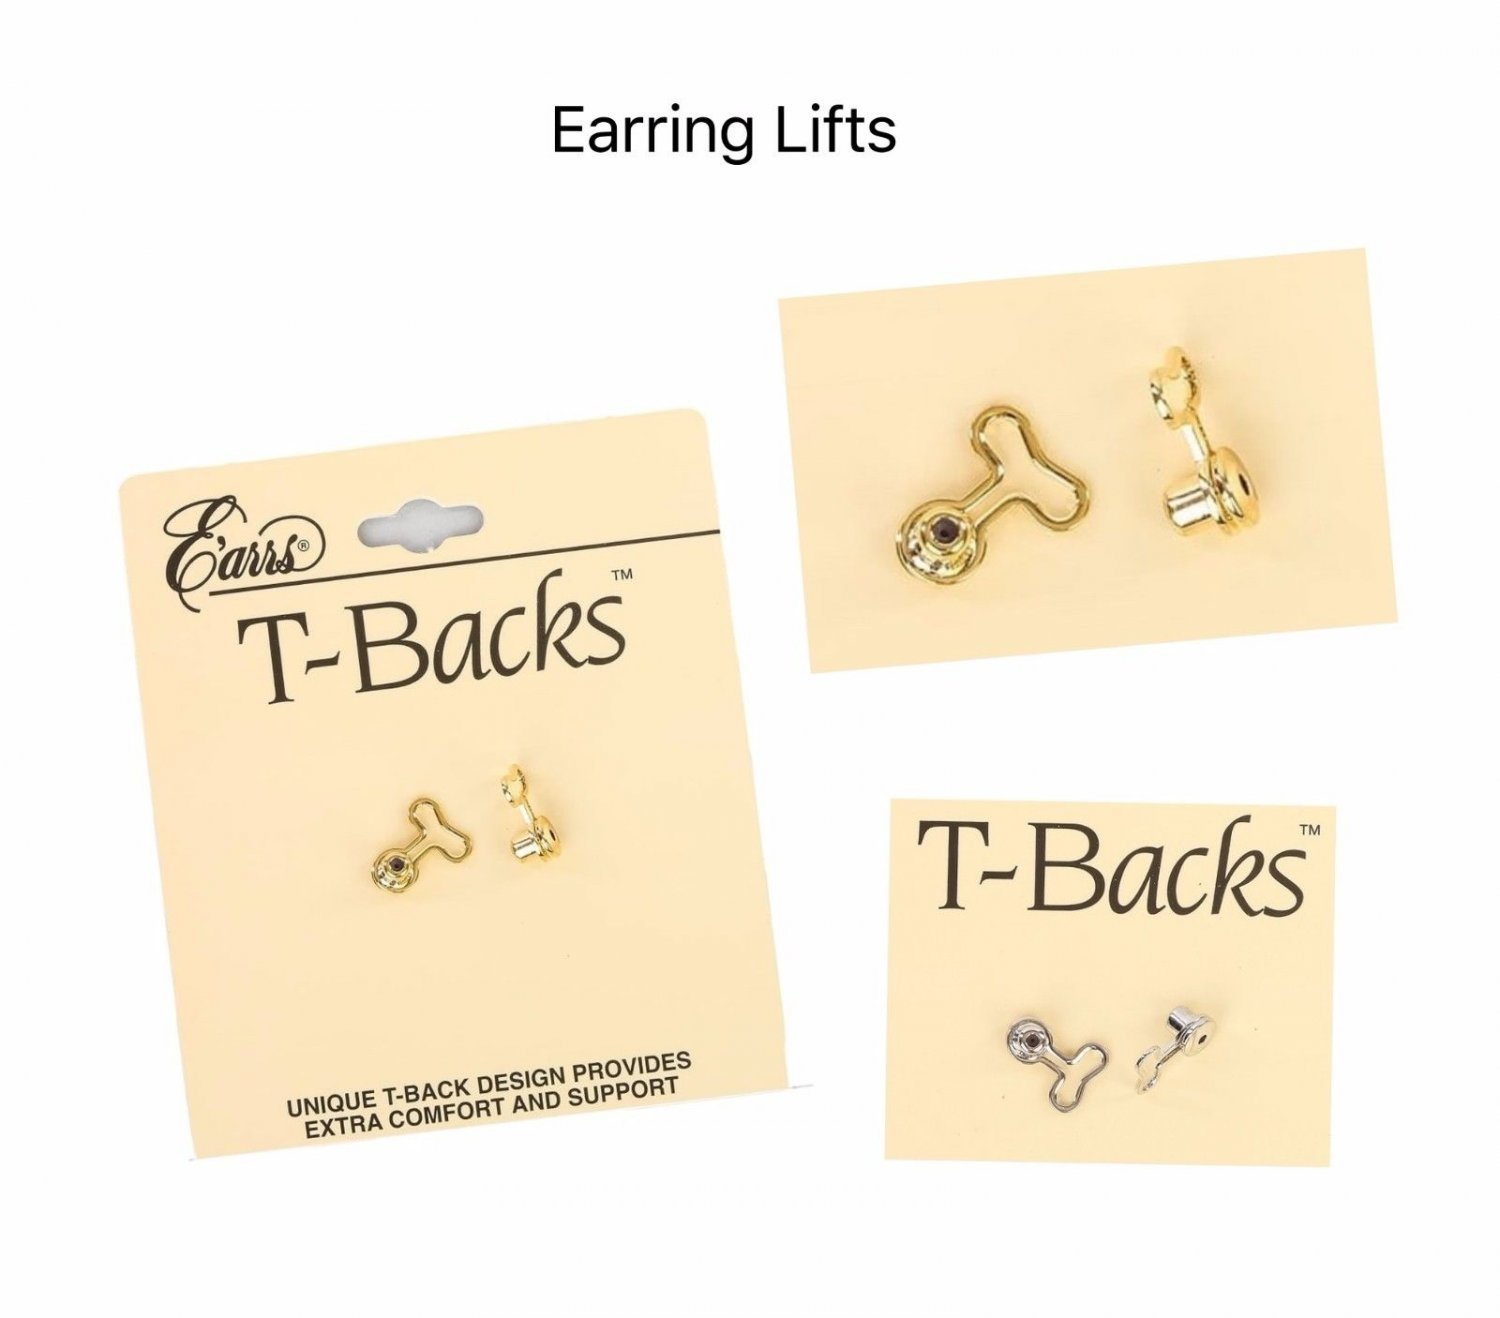 2 Pair Gold & Silver T Backs Post Stud Earring Lifts Support Replacement Backs